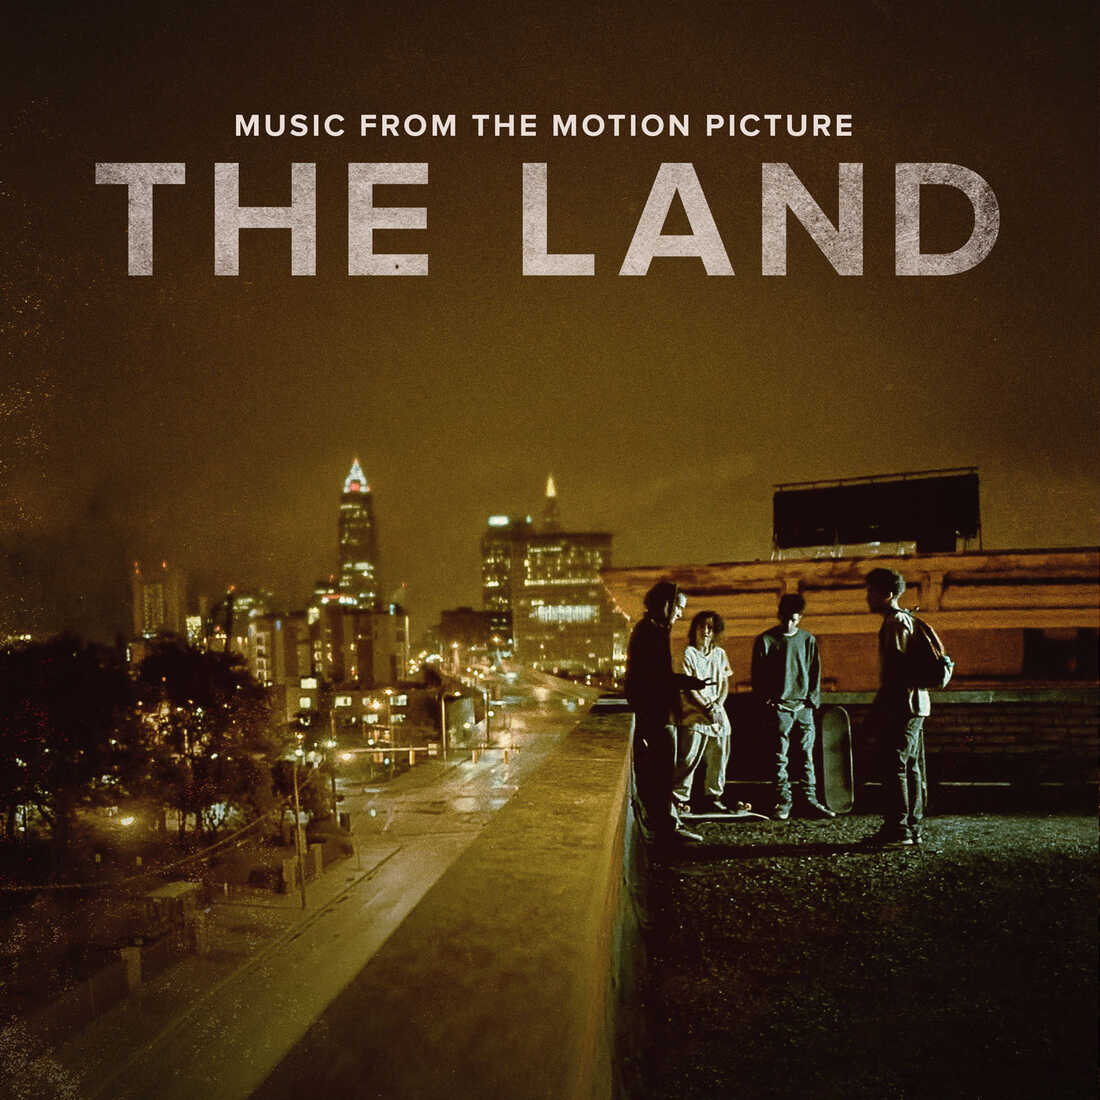 The soundtrack for the film, The Land, comes out July 29